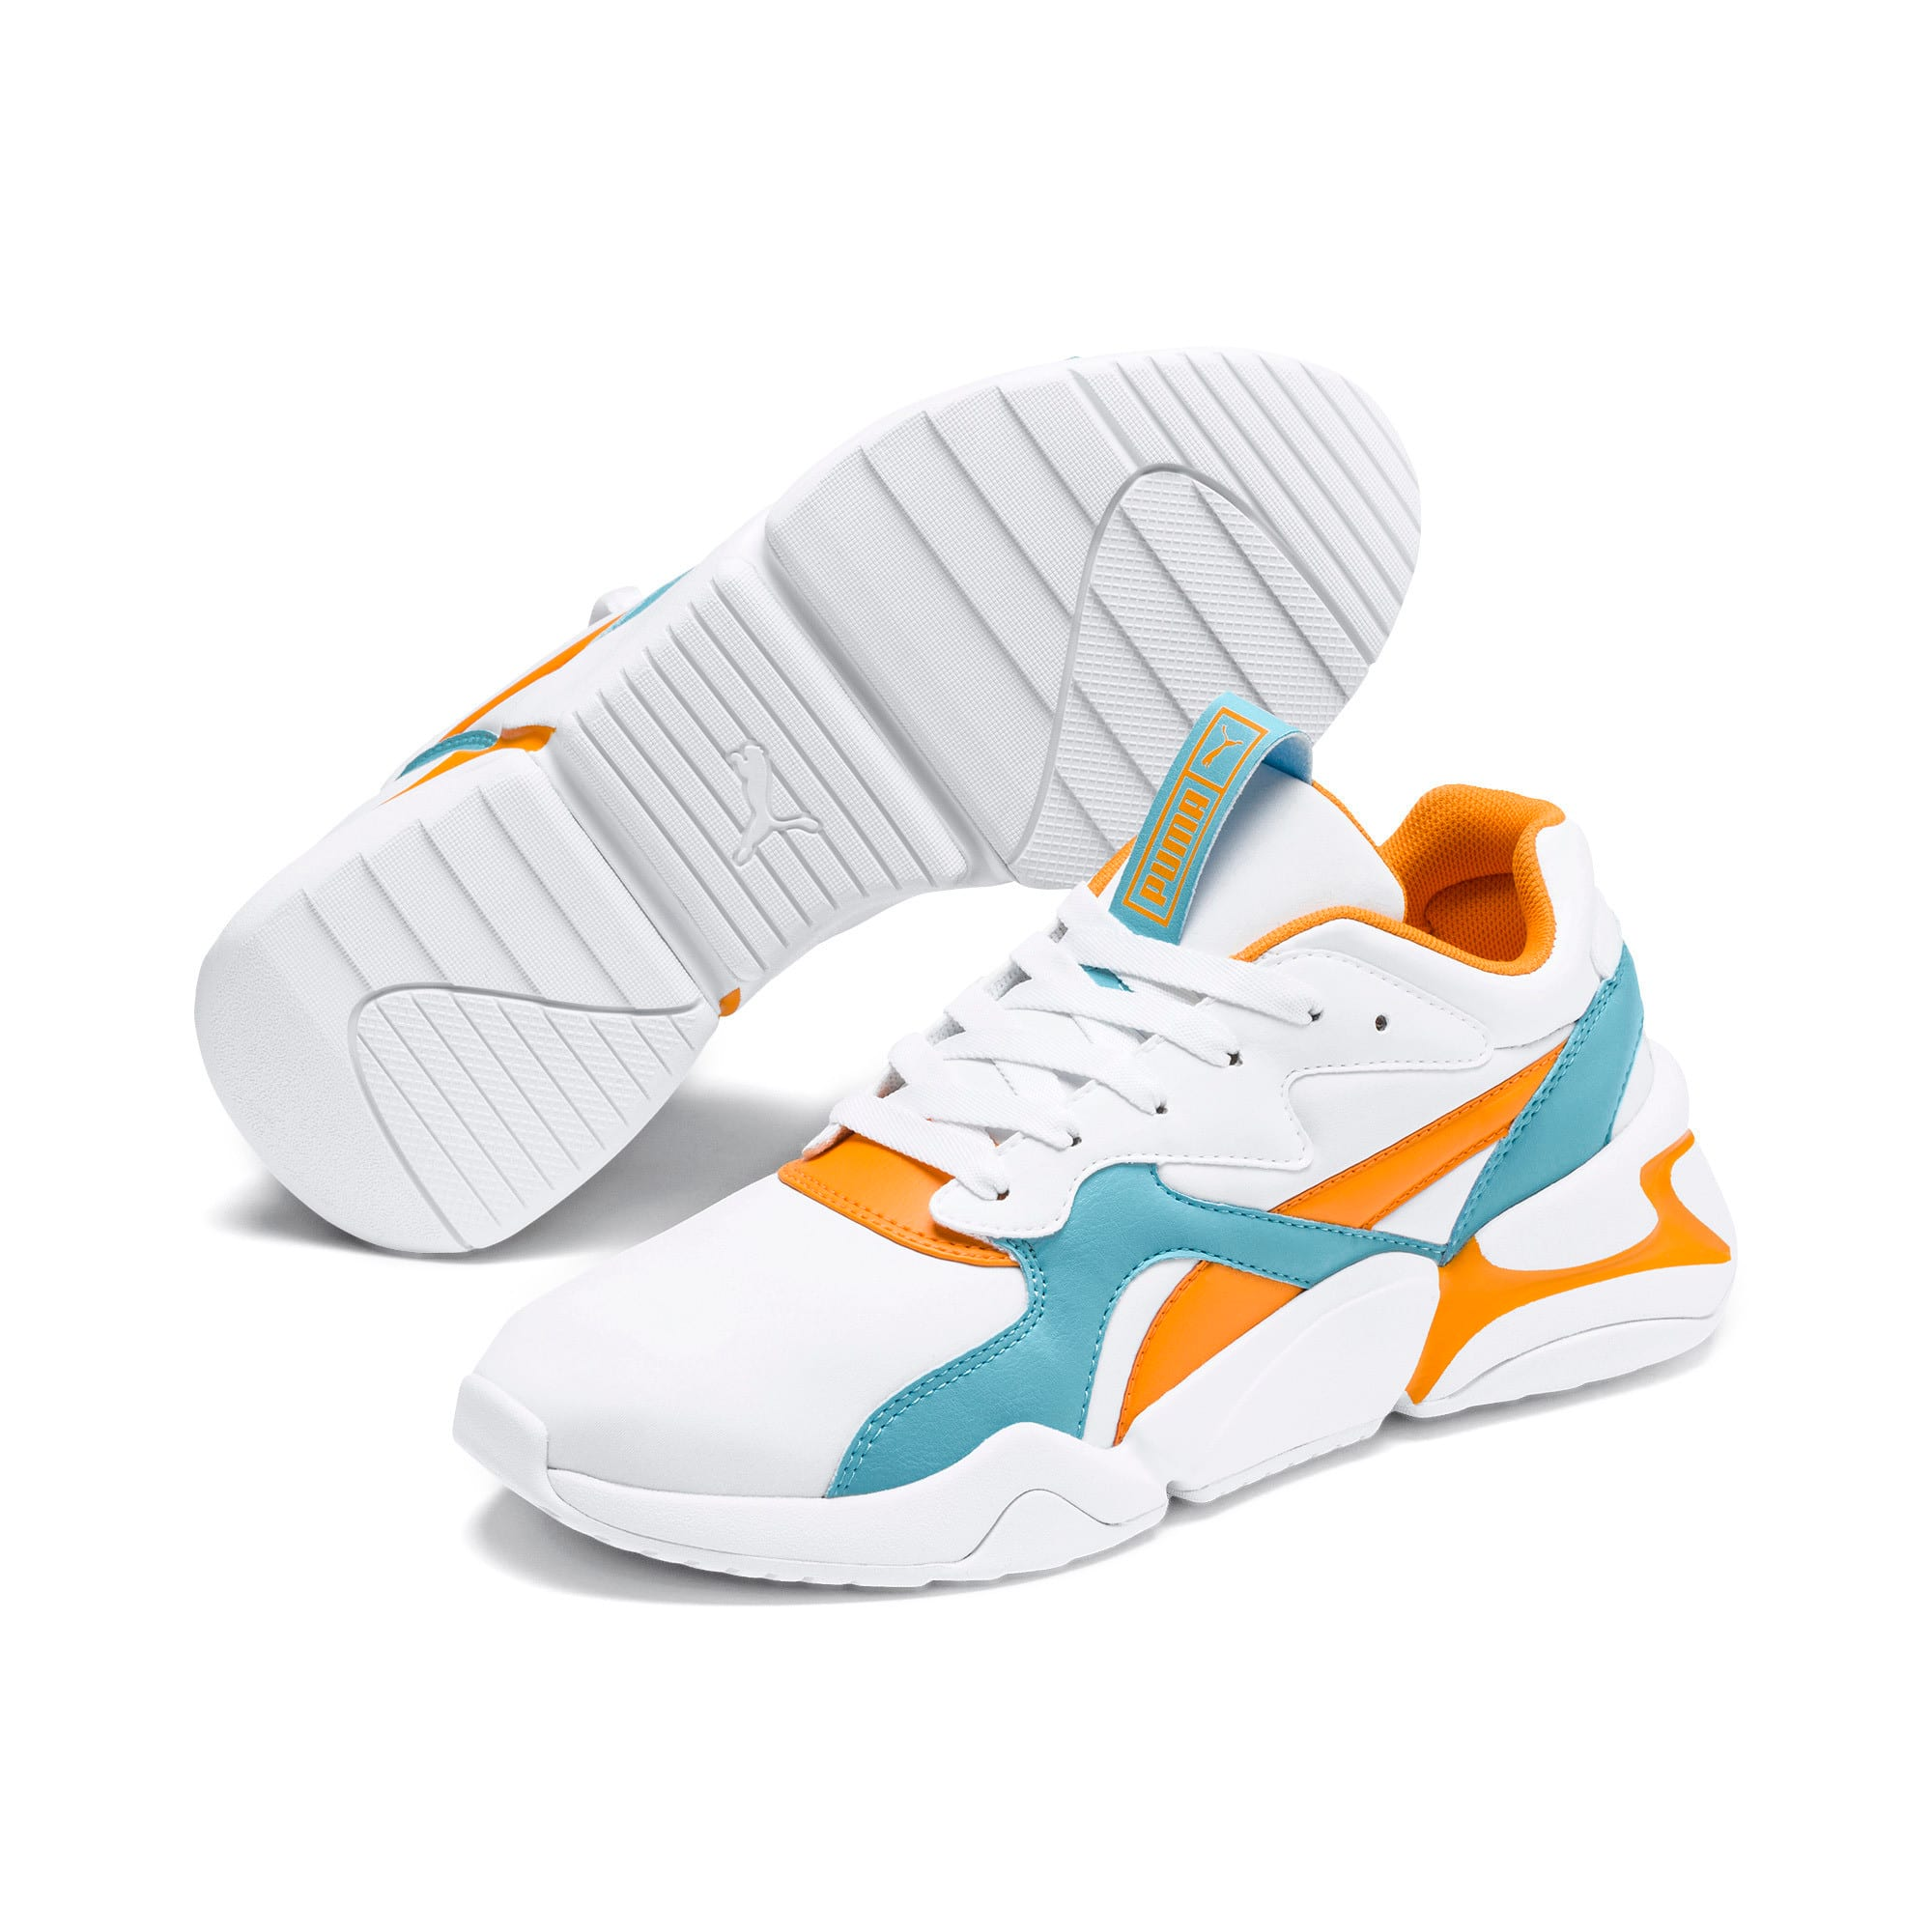 Thumbnail 3 of Nova Women's Trainers, Puma White-Milky Blue, medium